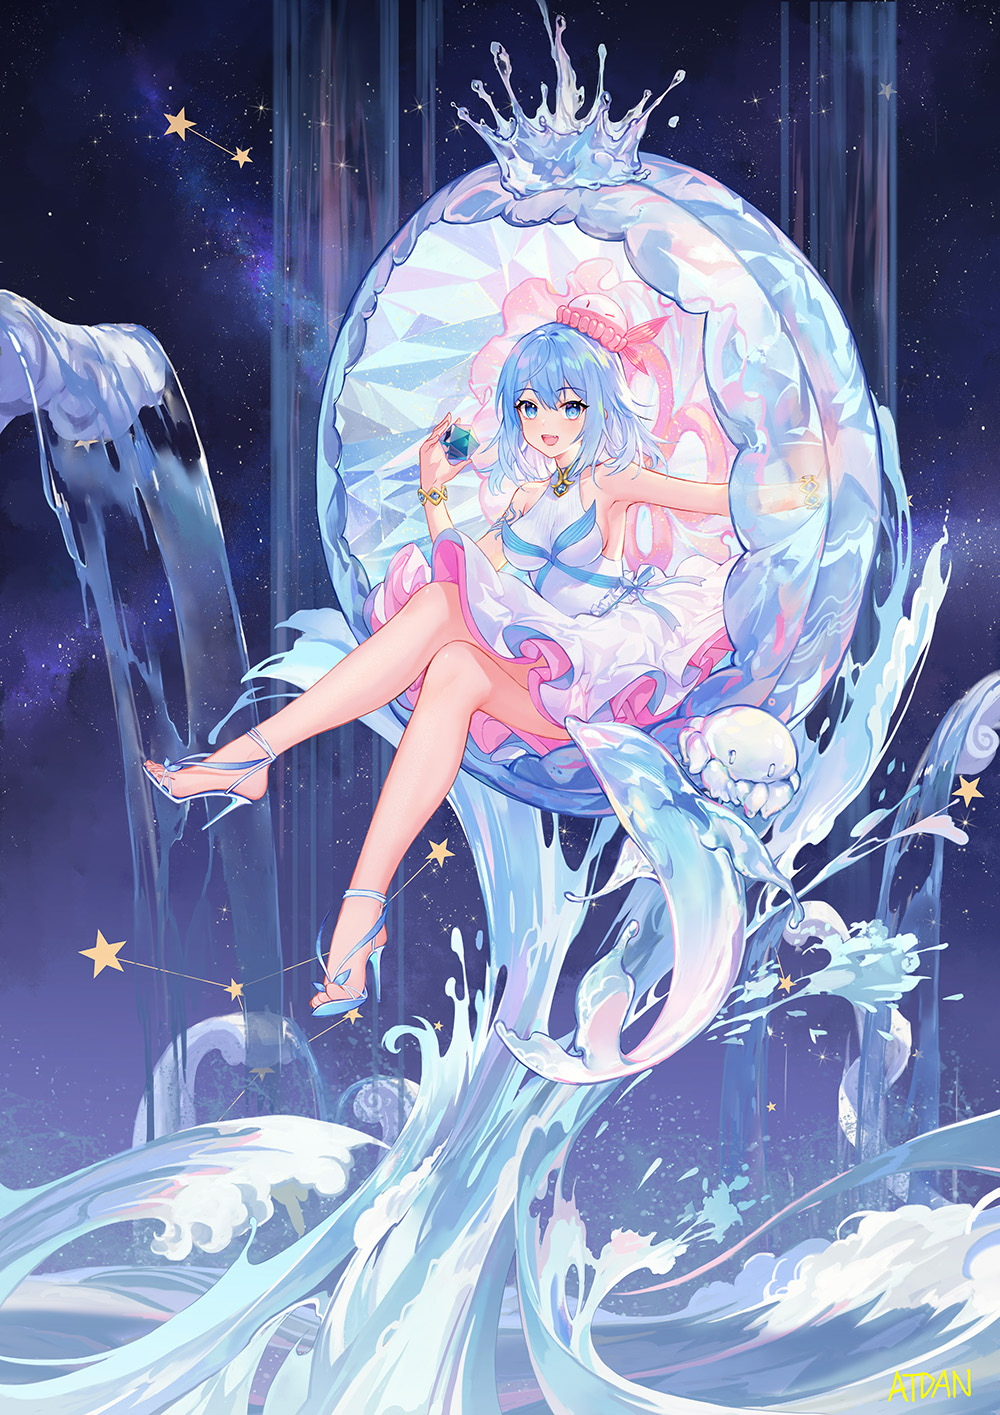 1girl :d armpits artist_name atdan bangs bare_arms bare_legs bare_shoulders blue_eyes blue_footwear blue_hair bracelet breasts commentary crossed_legs dress english_commentary eyebrows_visible_through_hair hair_between_eyes haiyi hand_up hat high_heels highres holding jellyfish jewelry large_breasts long_hair looking_at_viewer night night_sky open_mouth revision shoes sitting sky sleeveless sleeveless_dress smile solo star star_(sky) starry_sky synthesizer_v transparent water waterfall white_dress